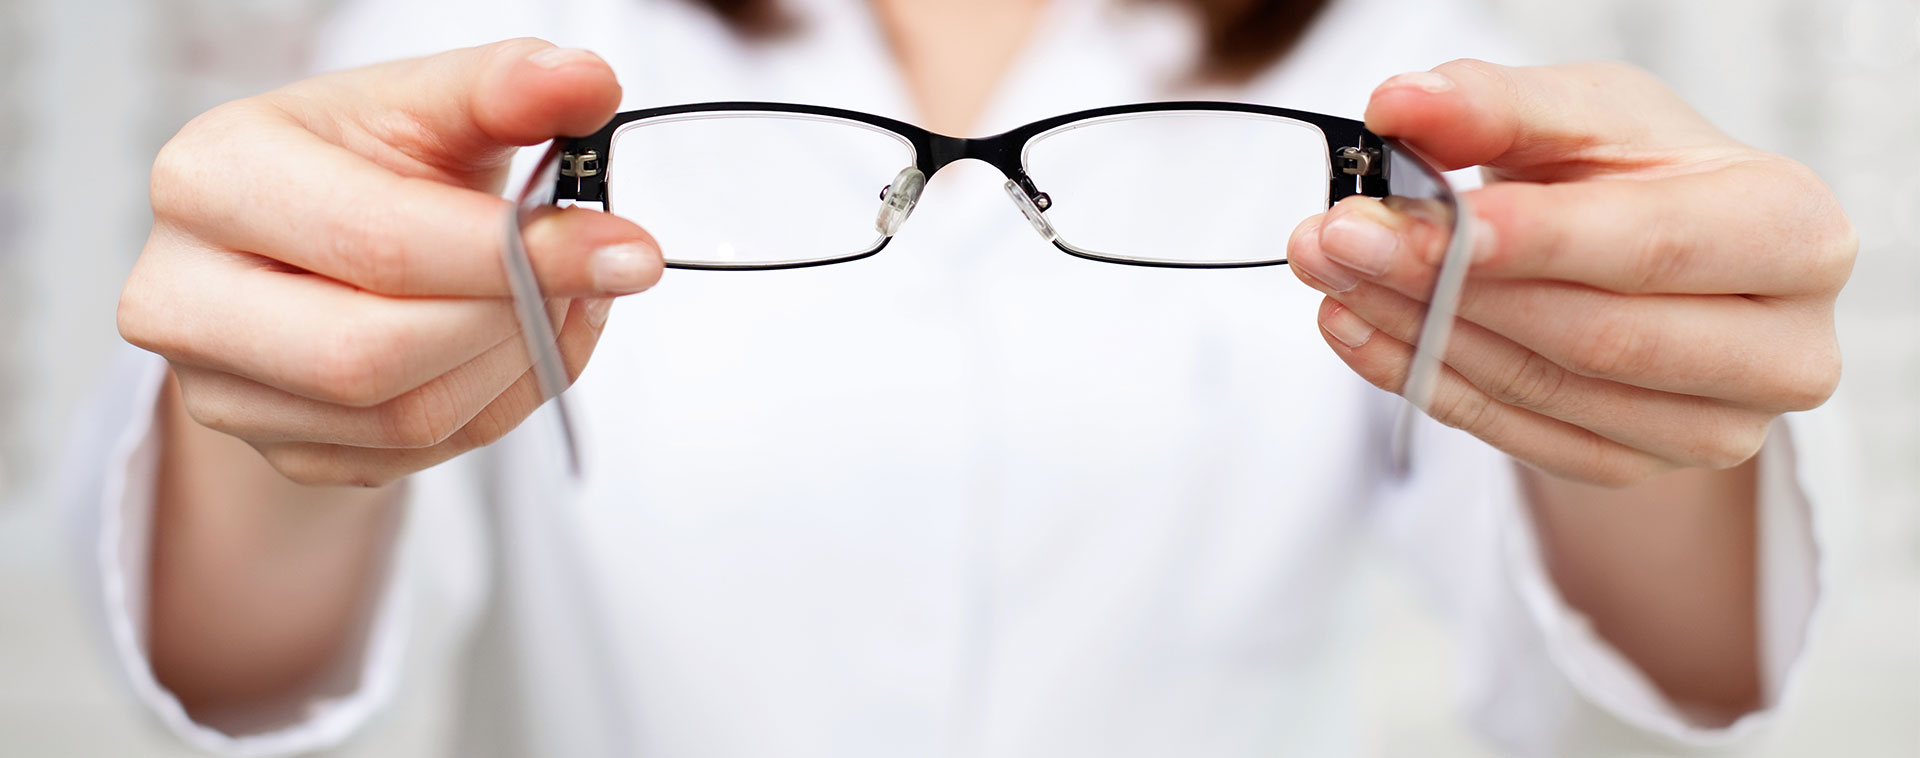 boerne texas eye glasses and protected vision at johnson eye care